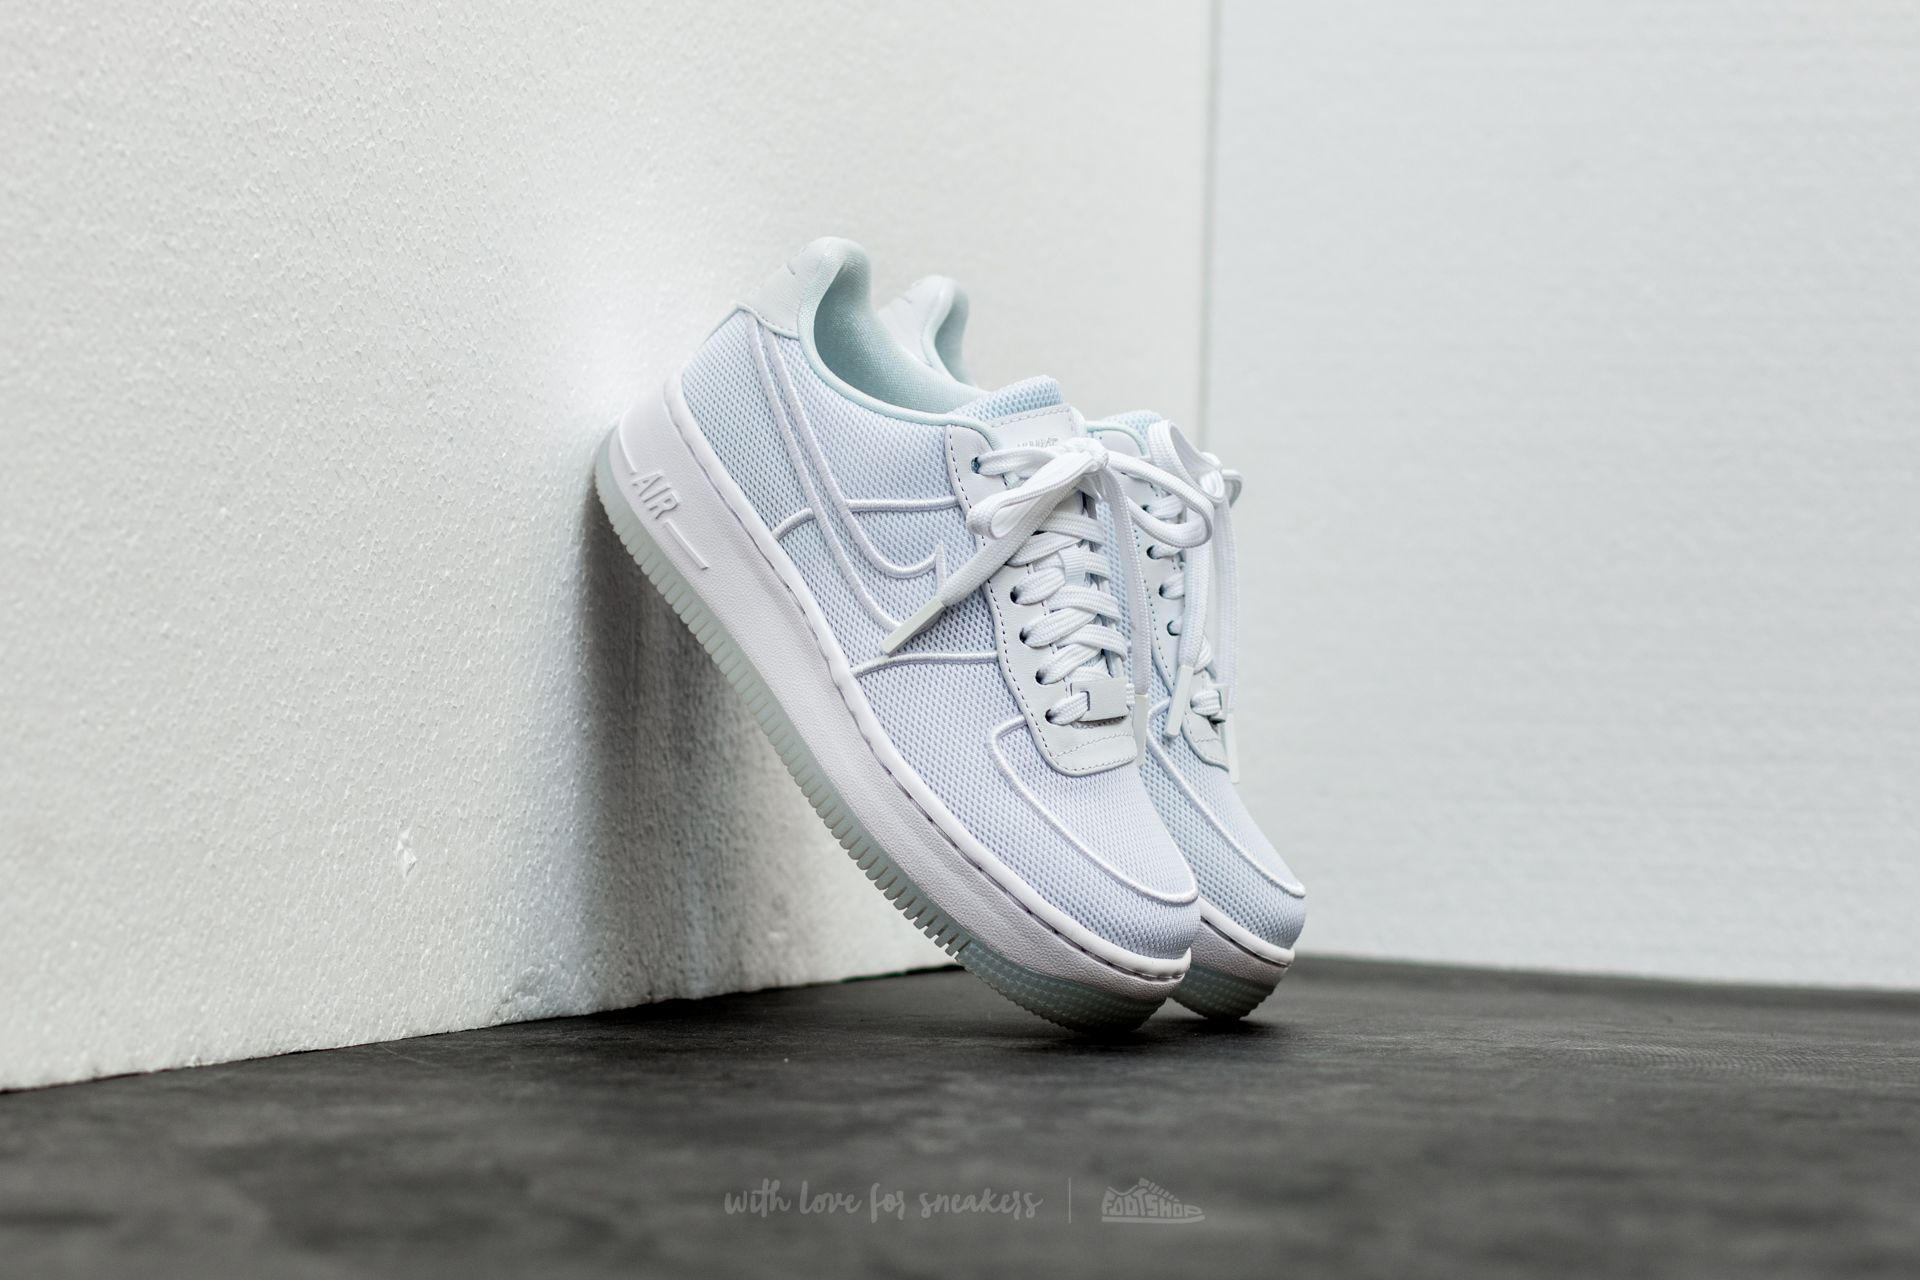 b3bffc2a8e7 Nike W Air Force 1 Low Upstep Br White/ White-Glacier Blue | Footshop